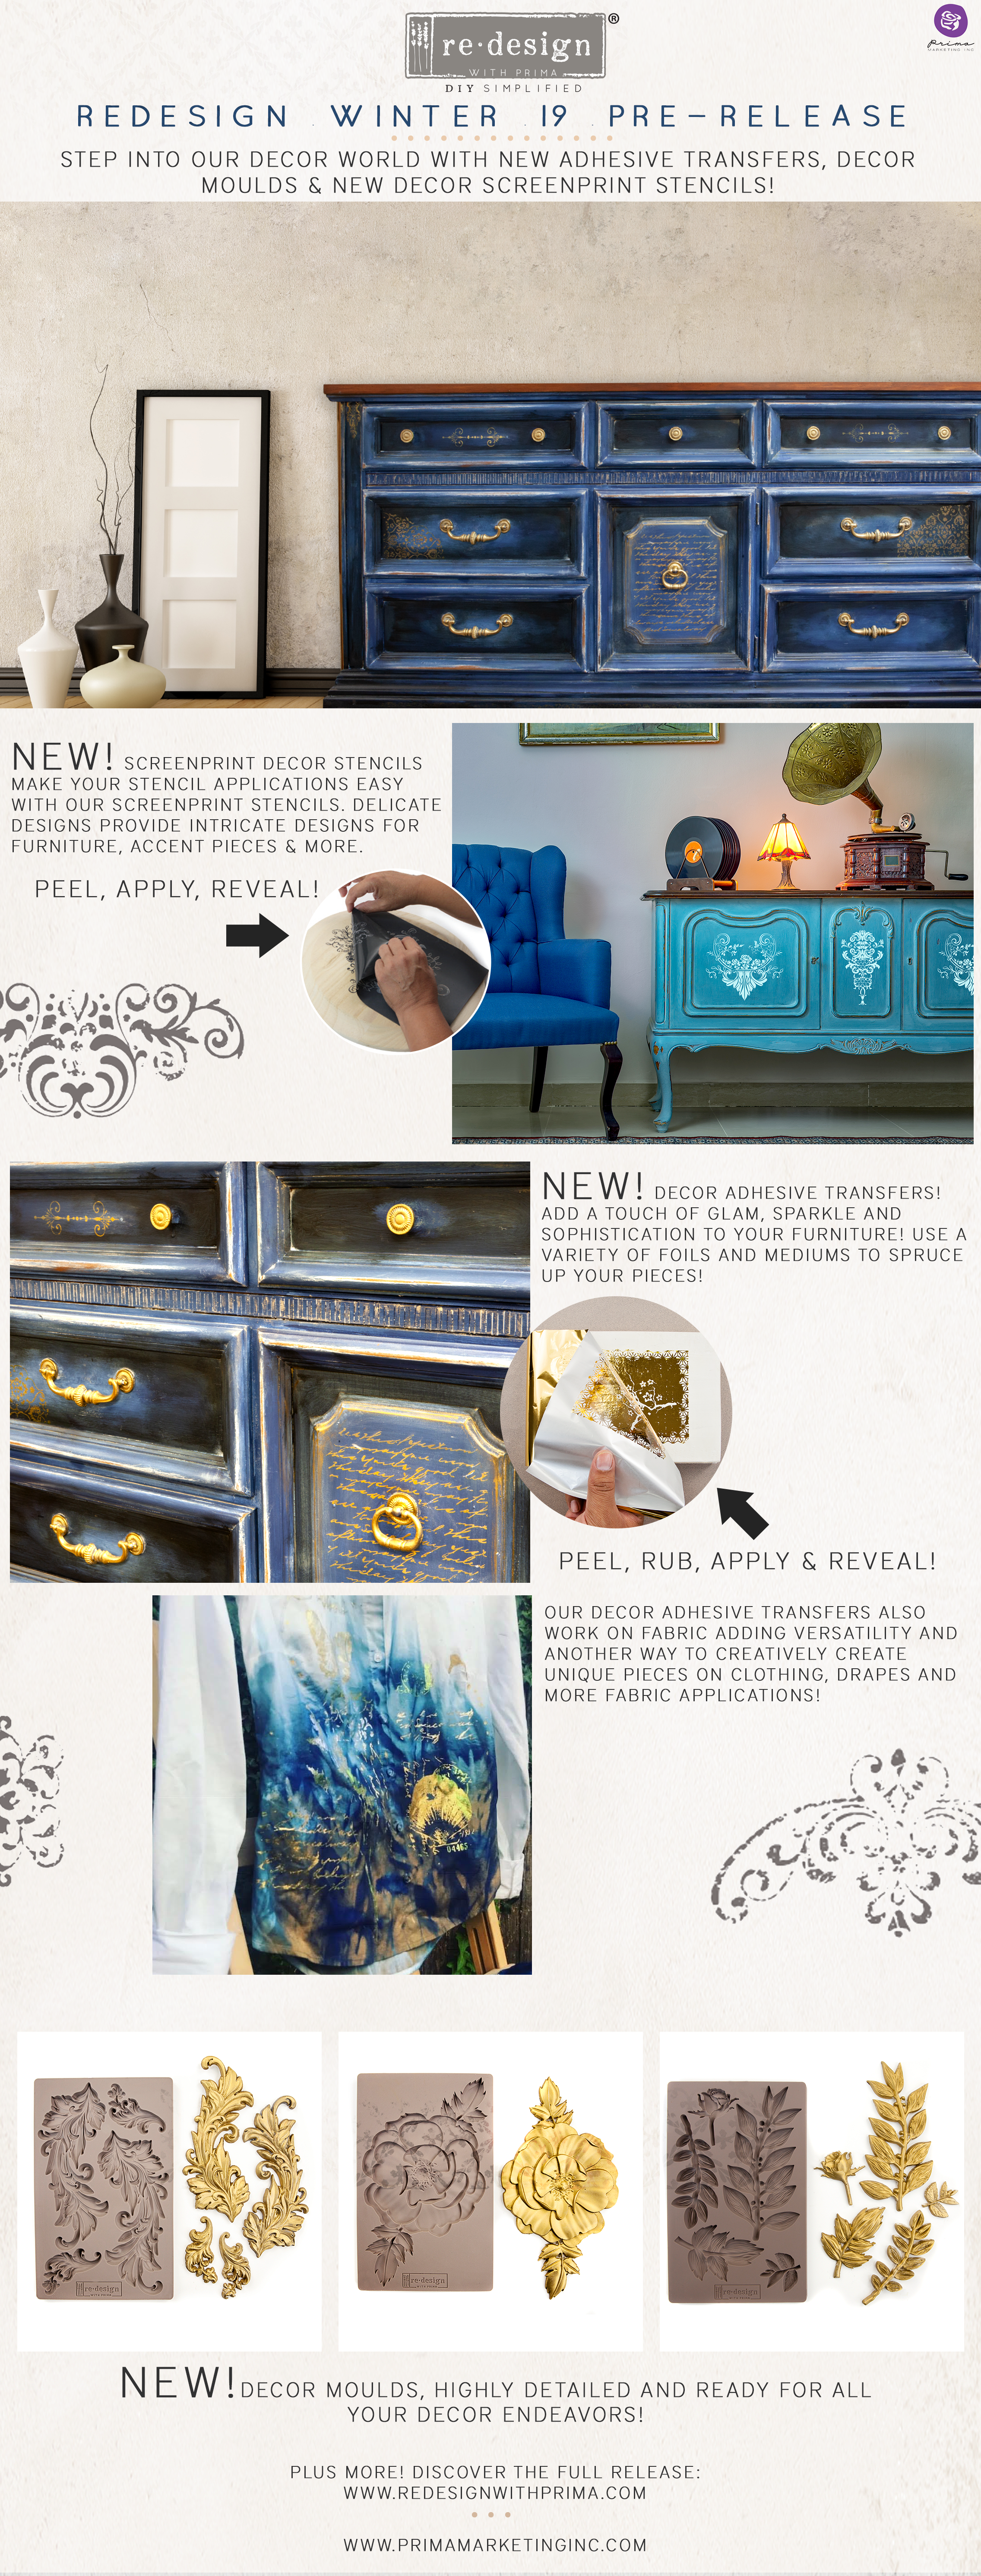 Christine Adolph  designed one of our most innovative products to date-Adhesive Decor Transfers™! There are 6 new sets filled with stunning designs, including a nautical themed set, botanicals and fabulous boho style patterns too. Transfer them to your project, then add Prima's Rub On foils for a lush finish…